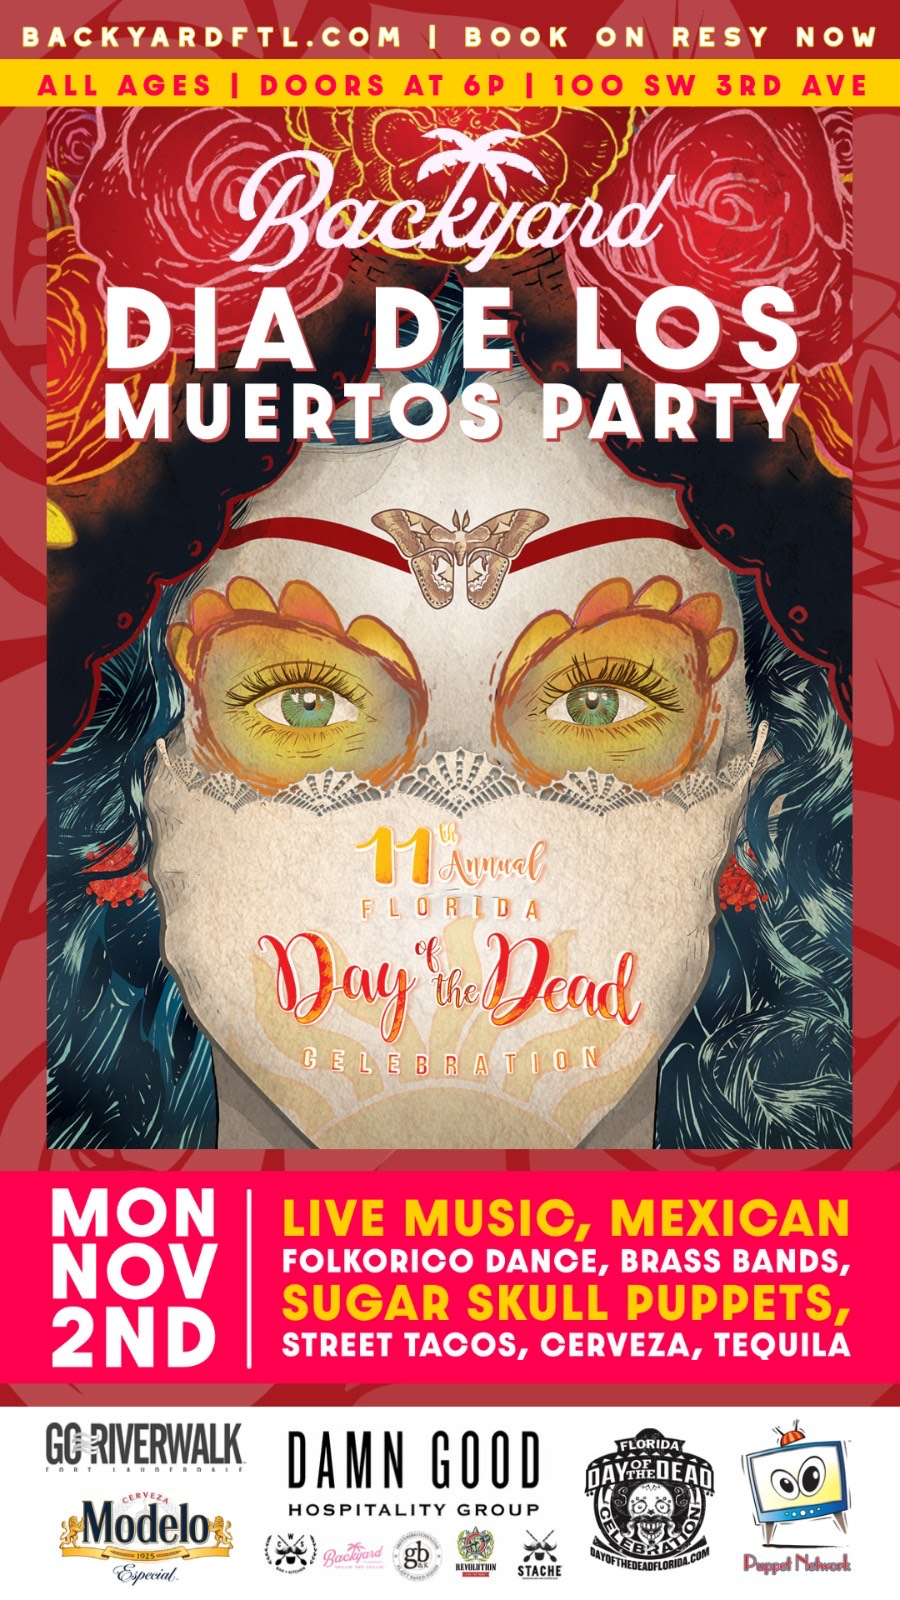 Poster for the Backyard Dia De Los Muertos Party